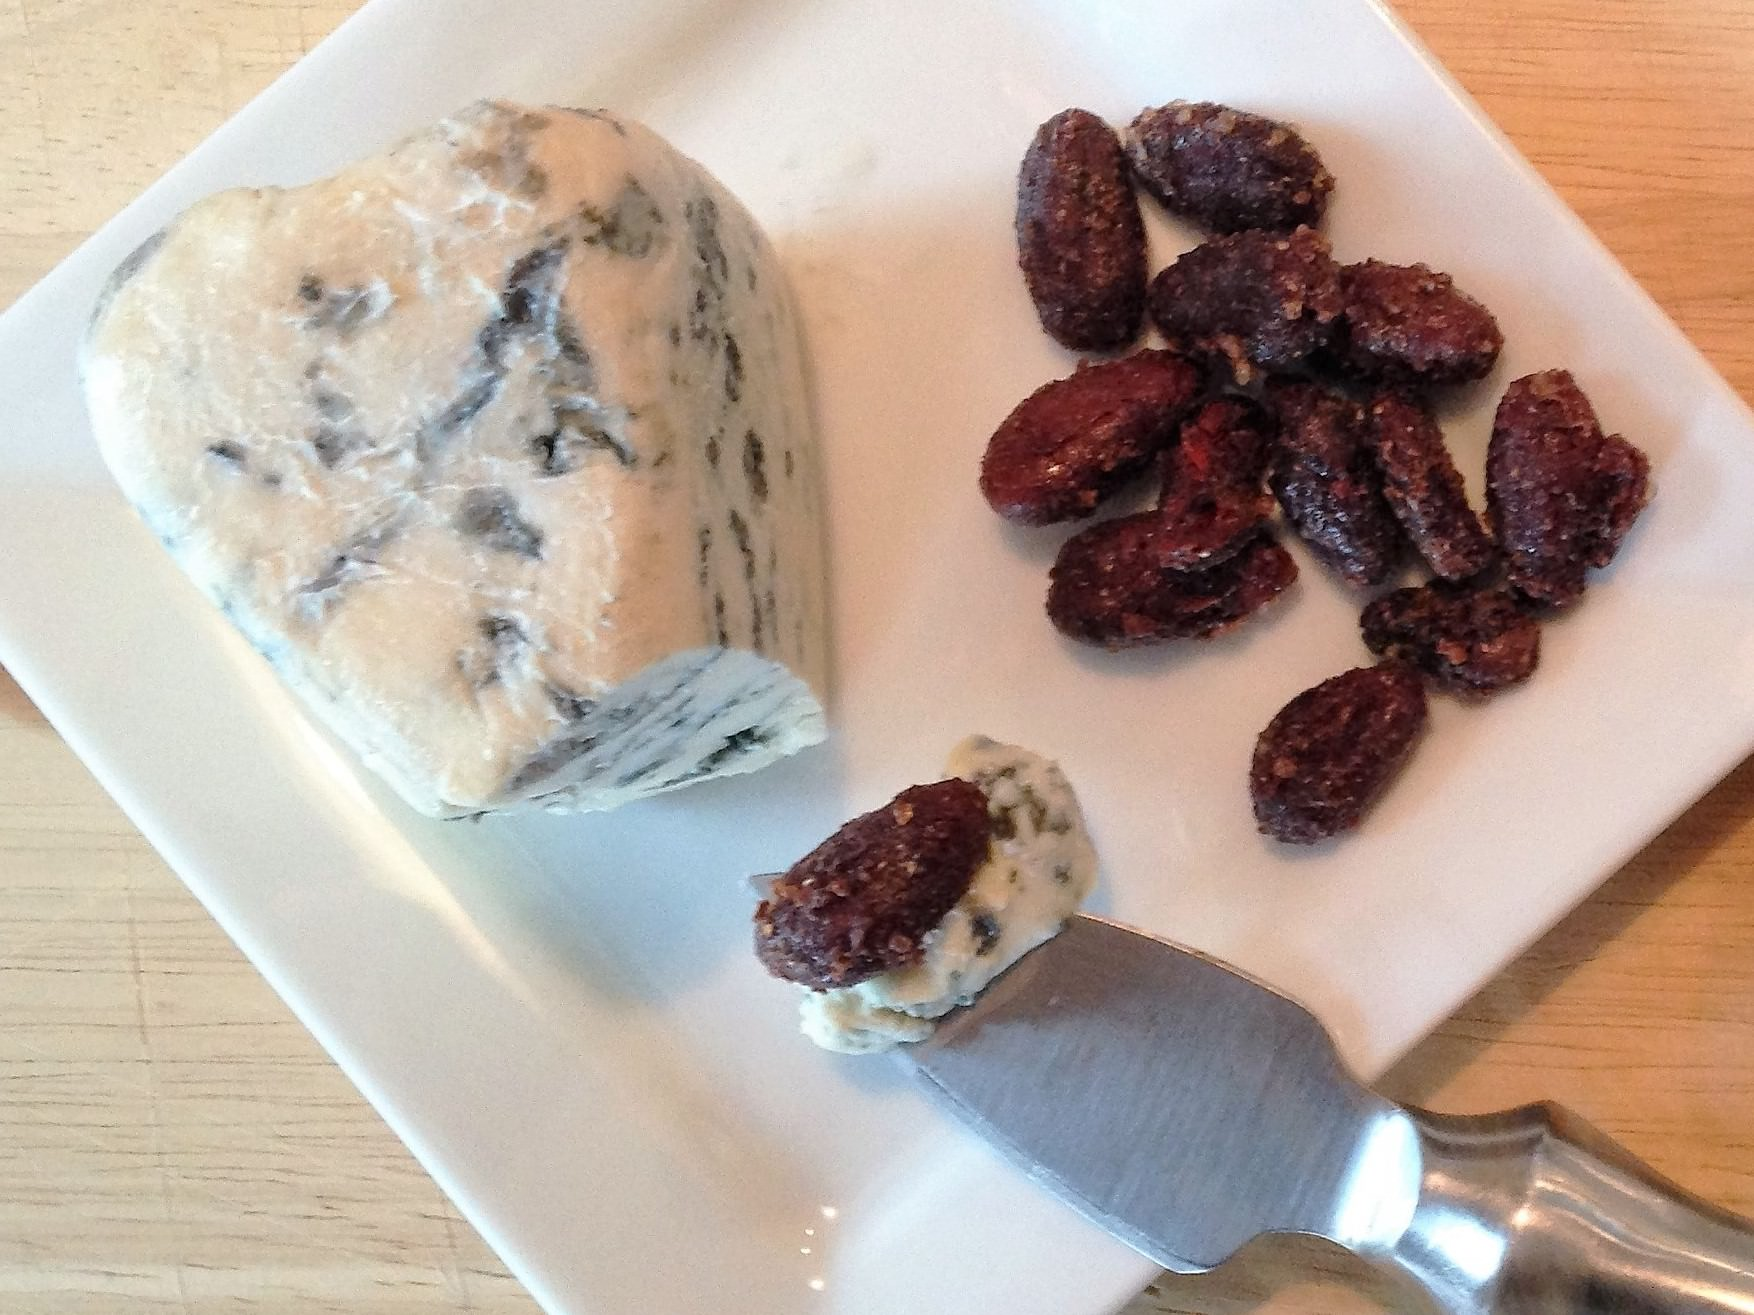 good-king-gourmet-snacking-cacao-love-blue-bleu-cheese-cinnamon-nutmeg-clove-cardamom